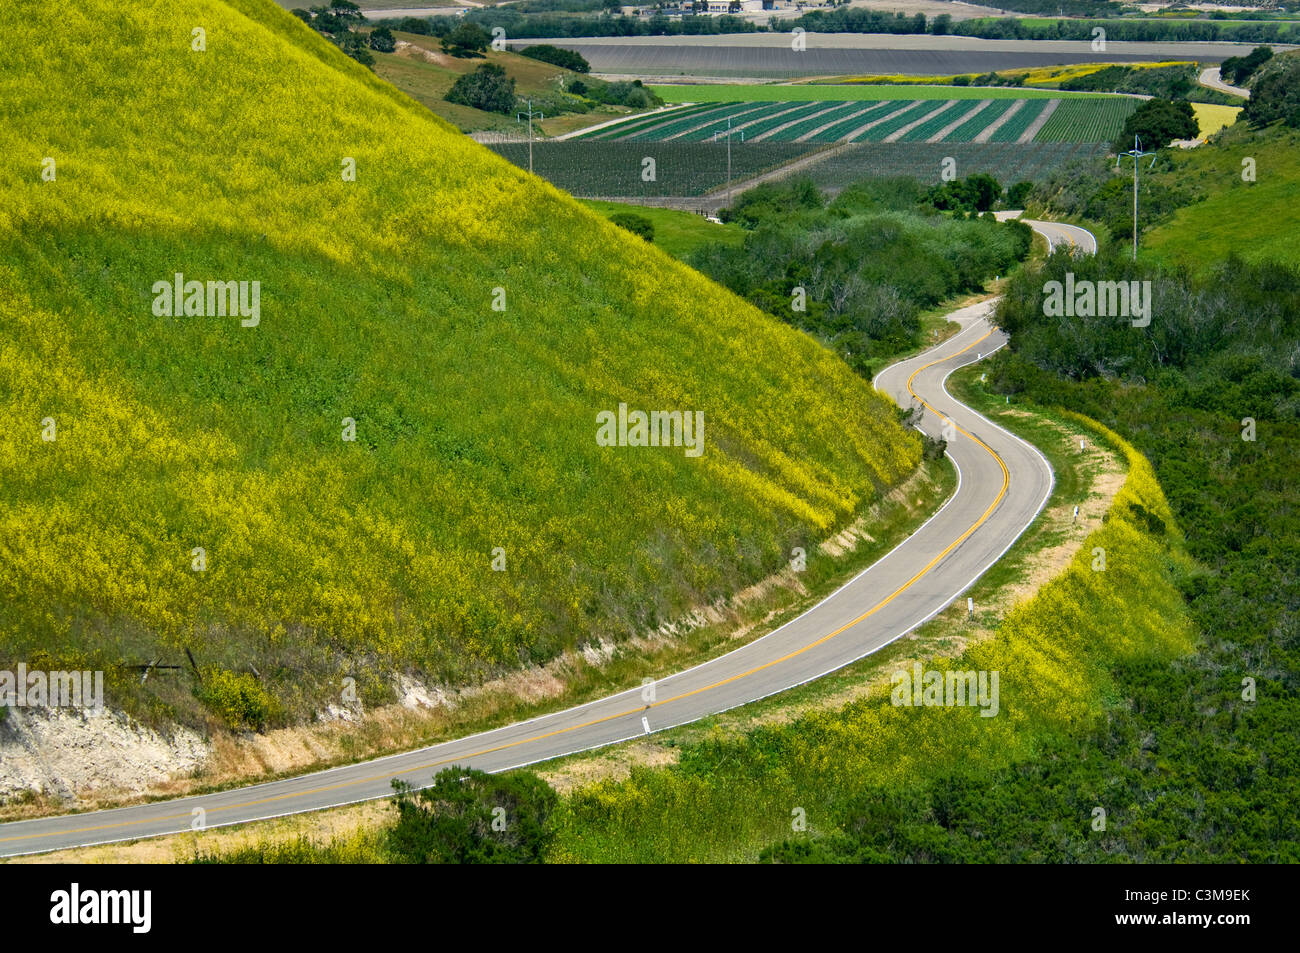 Country road curves through green hills and agriculture valley is Spring, near Lompoc, Santa Barbara County, California - Stock Image